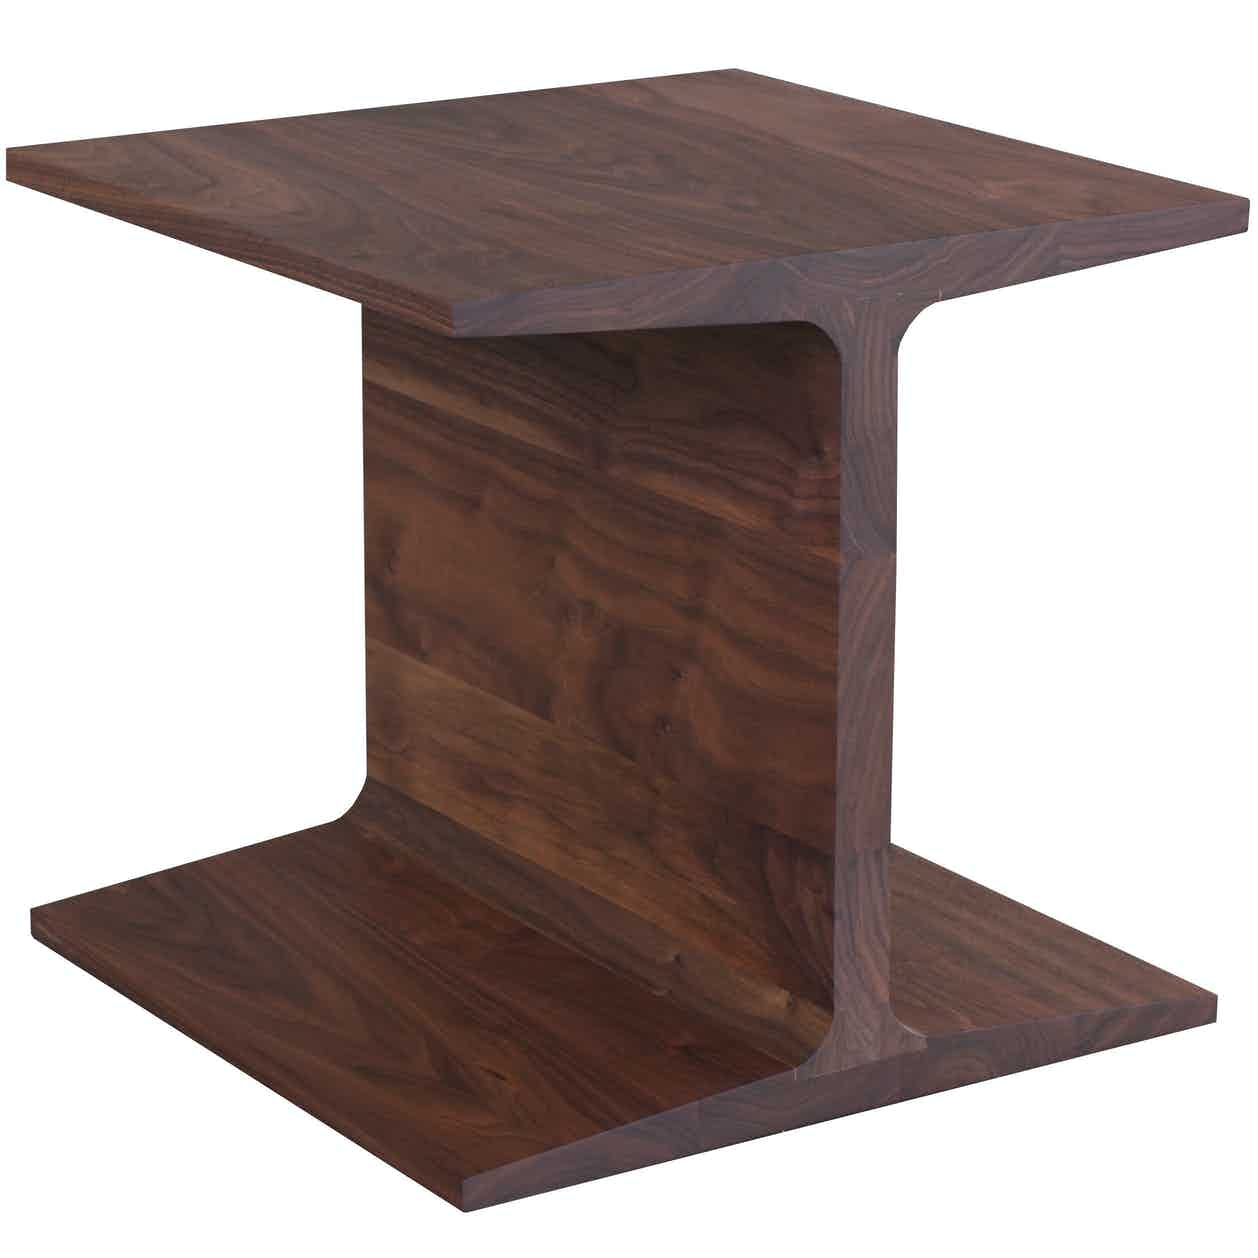 De La Espada Matthew Hilton I Beam Side Table Chestnut Haute Living